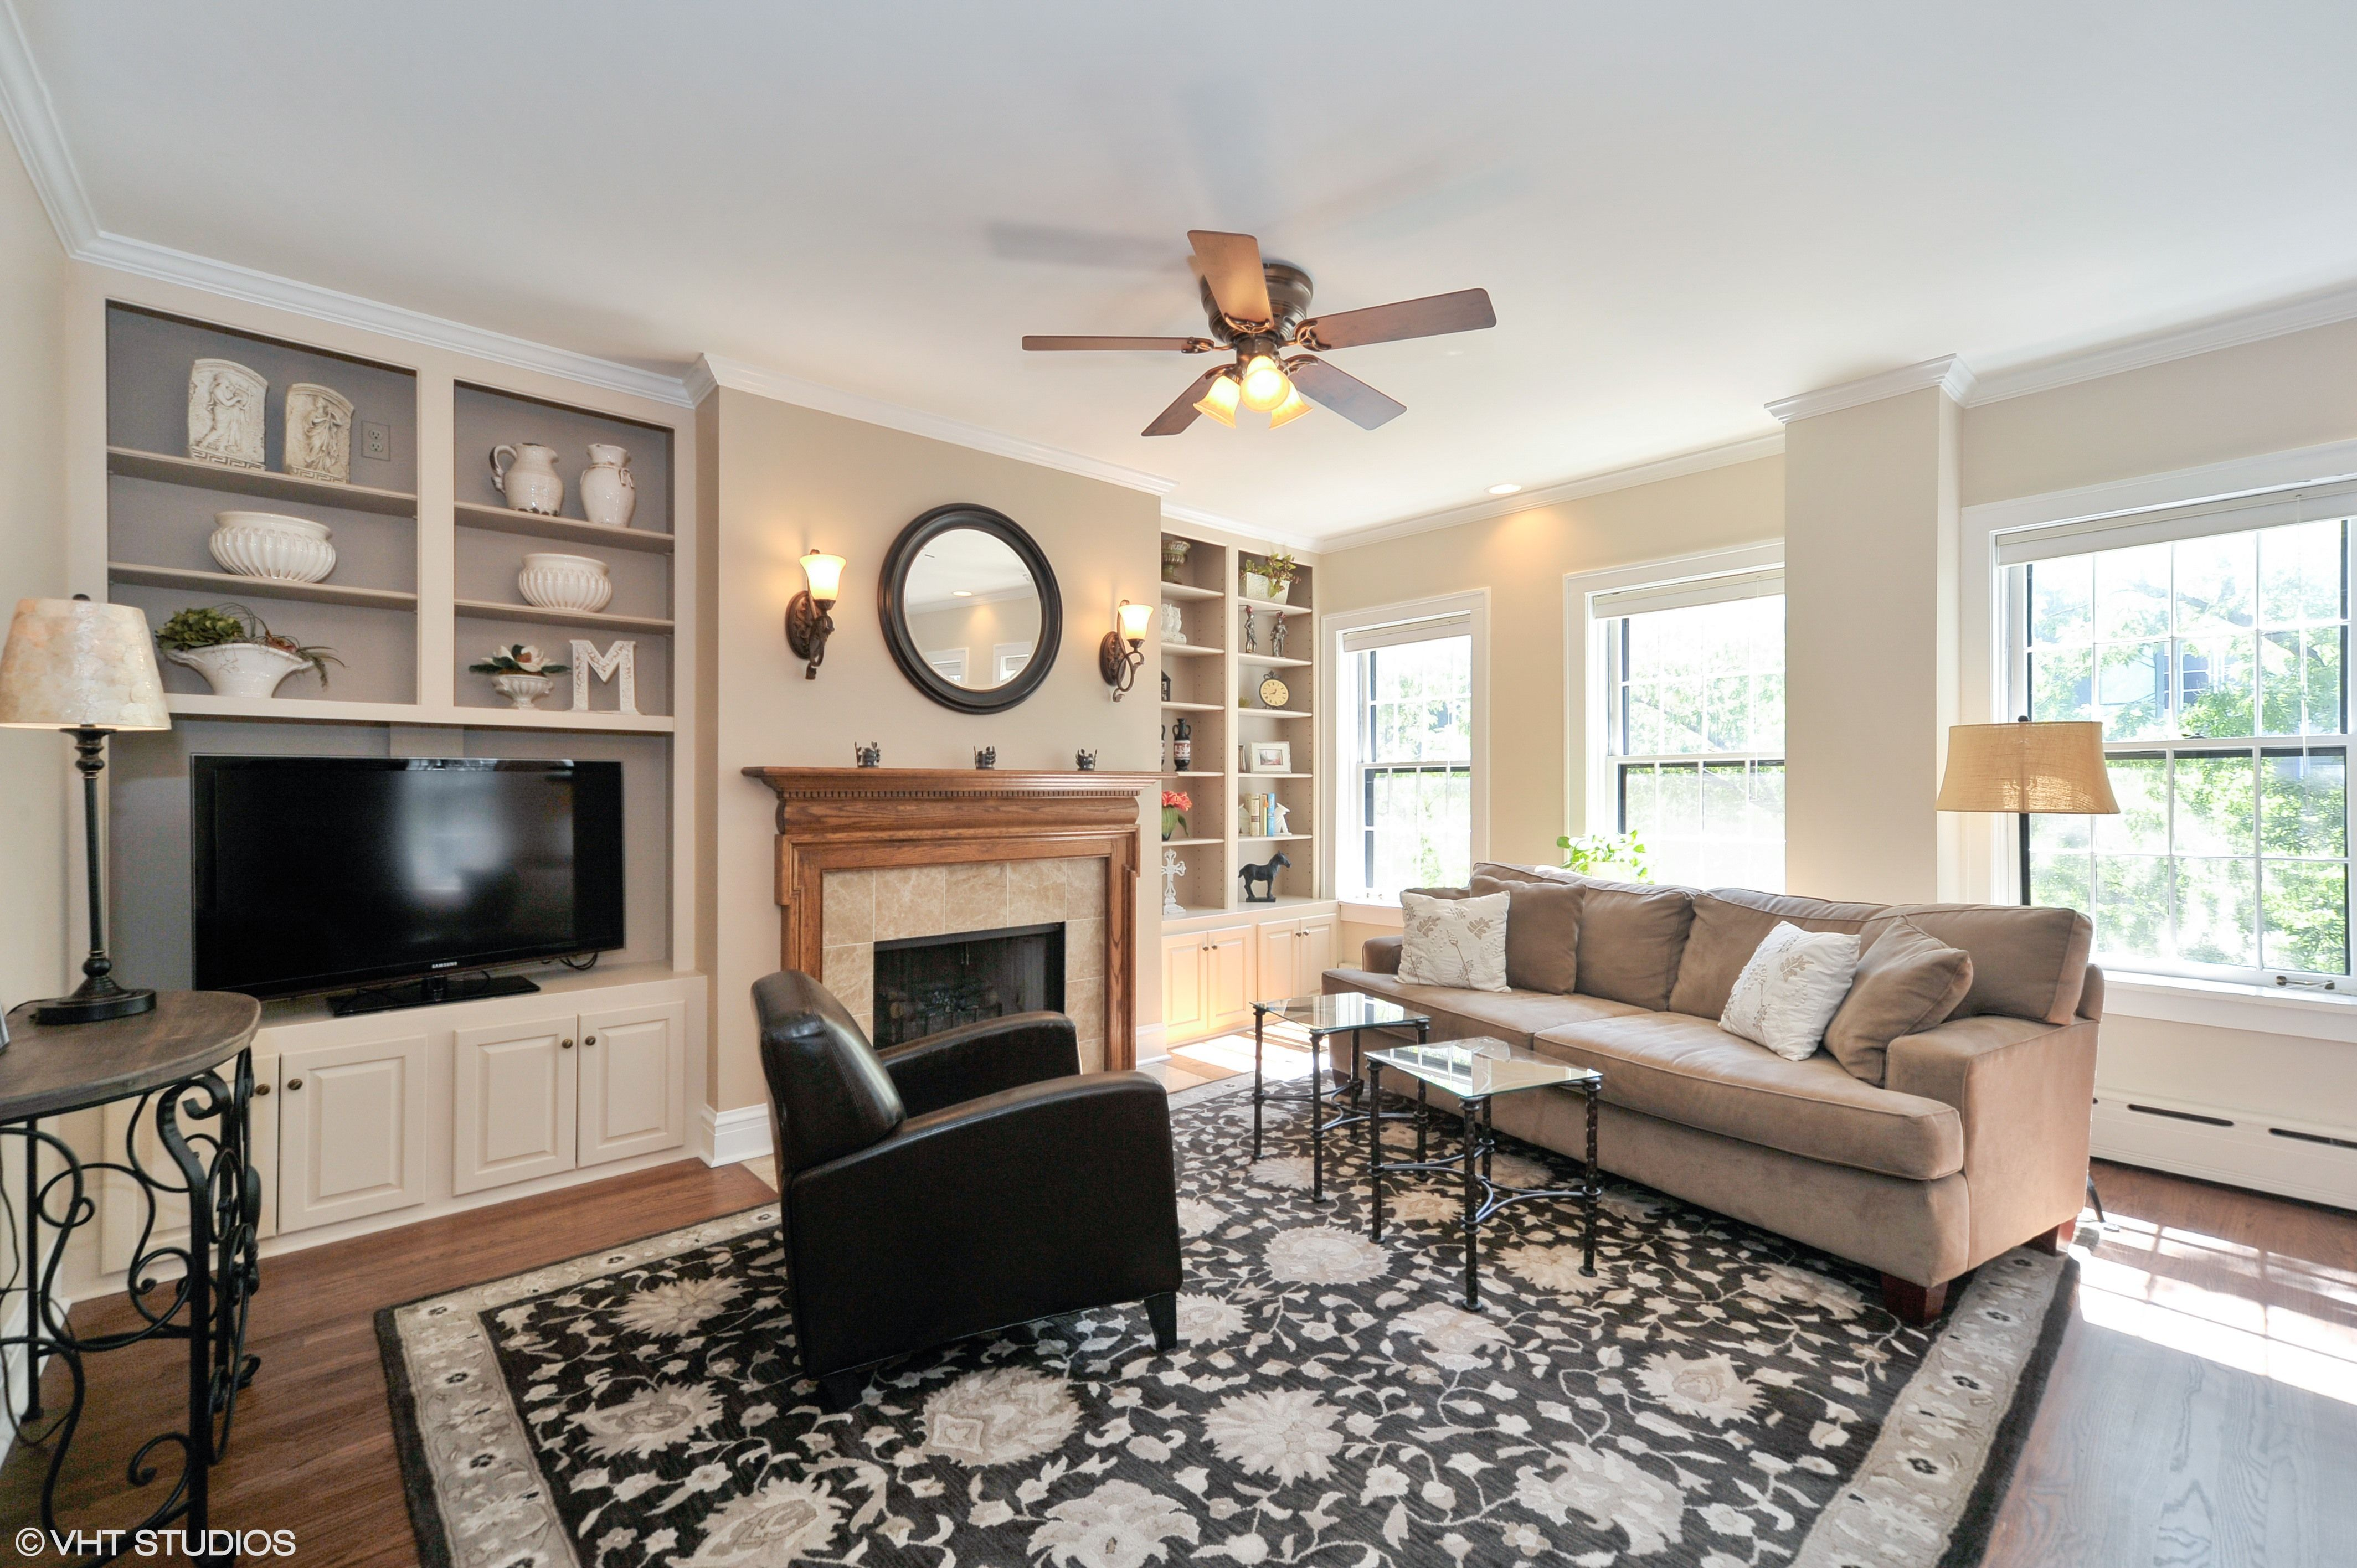 This contemporary condo for rent in Lincoln Park has a